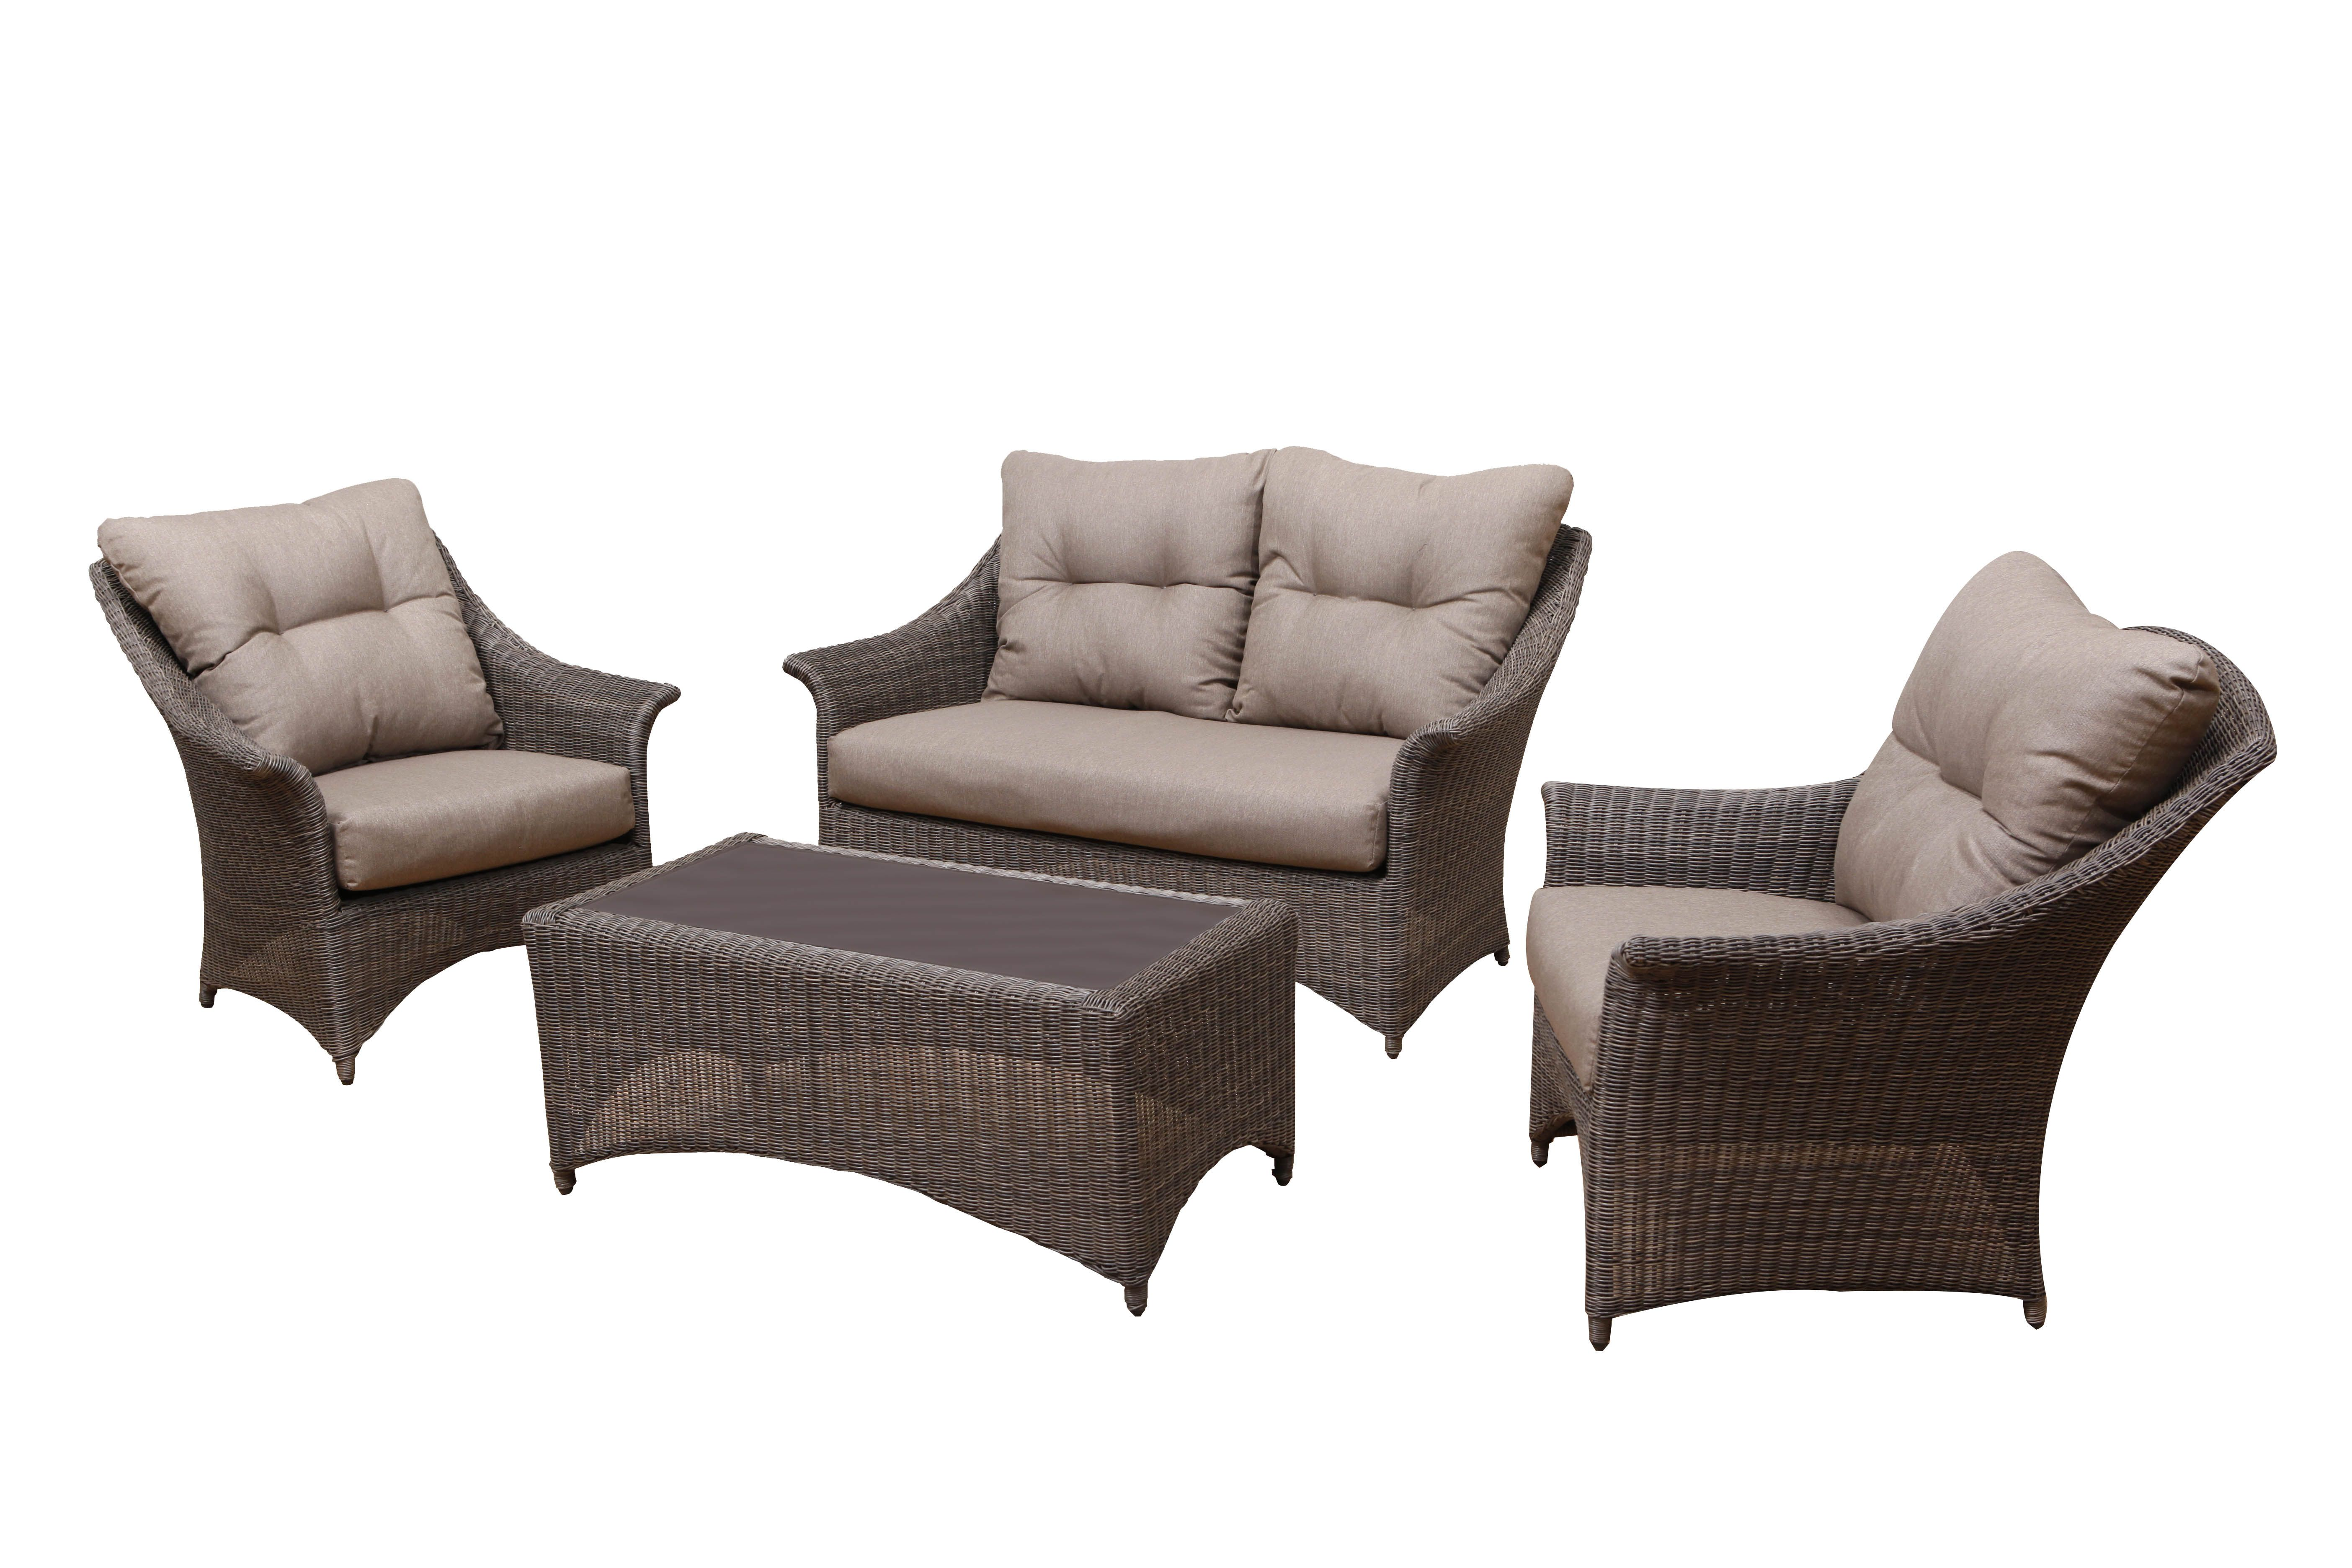 Cannes Outdoor Lounge Available At Drovers Inside Amp Out